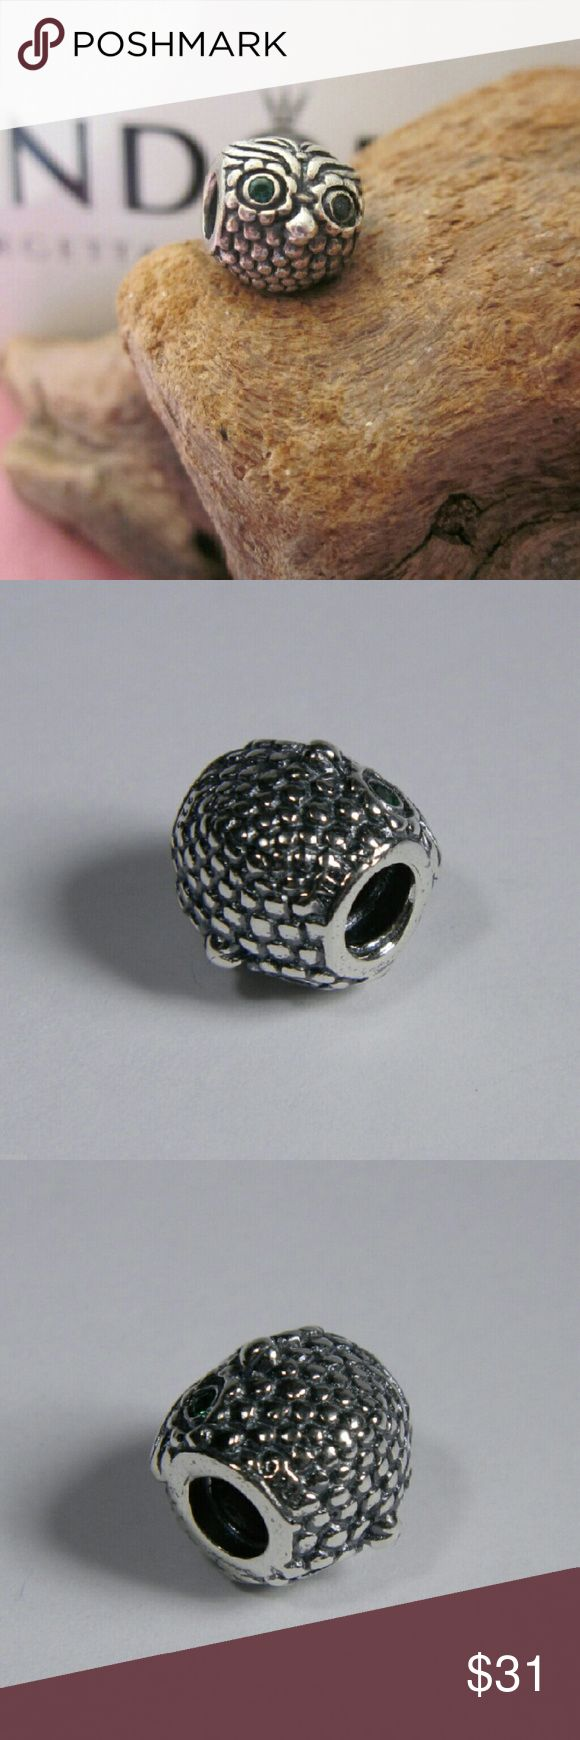 Pandora Wise Owl Charm # 791211CZN Pandora Wise Owl Charm # 791211CZN        Sterling silver  New and never used  % 100 authentic  S925/ale hallmark stamps on it  Official Pandora foldable cartoon box tissue and sticker included with purchase   If you interested in another item on my list please ask me, I do combine     Enjoy shopping Jewelry